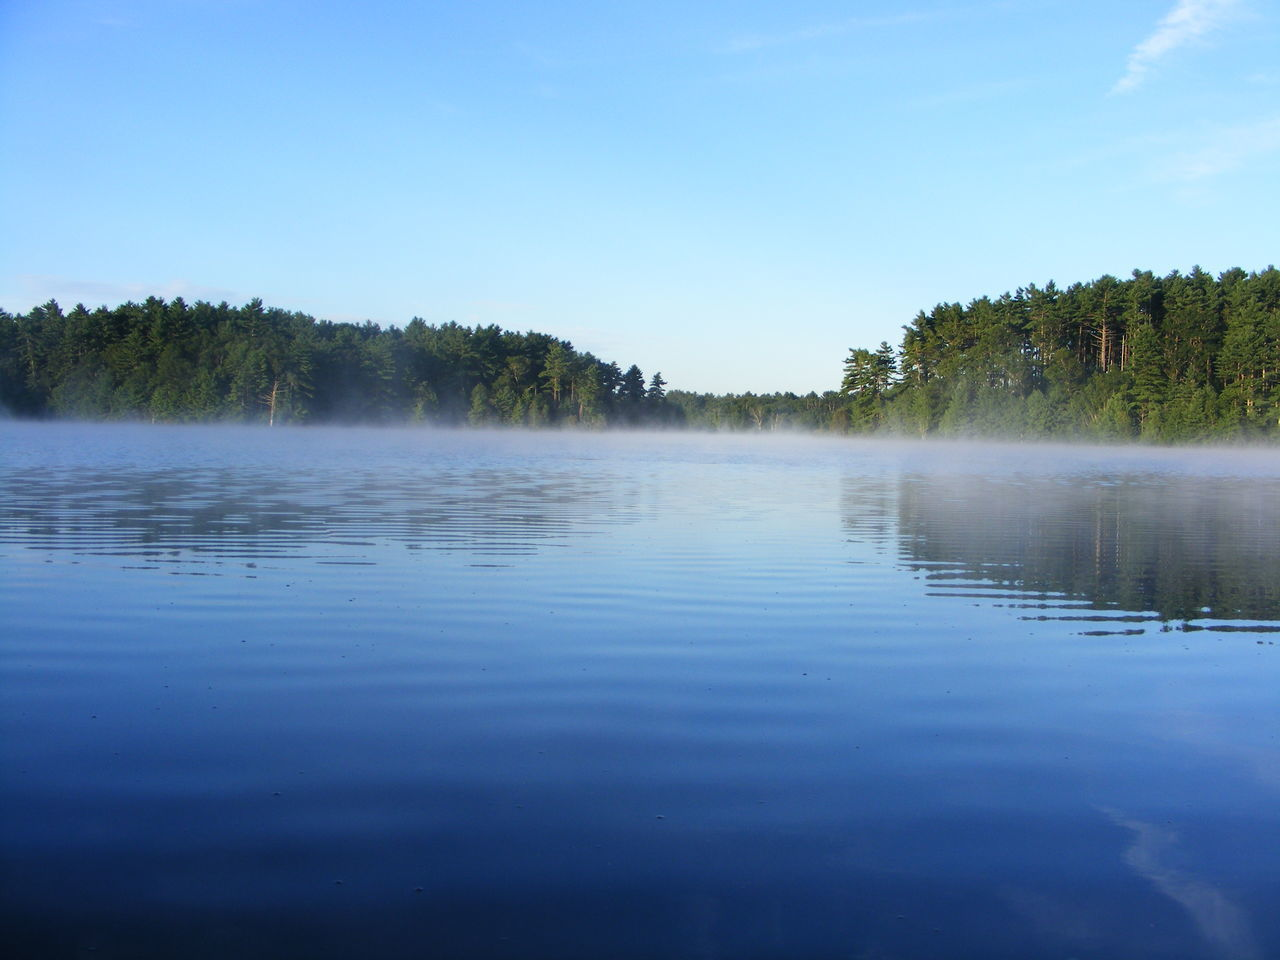 water, tree, tranquil scene, tranquility, reflection, nature, lake, no people, beauty in nature, scenics, blue, outdoors, sky, day, forest, clear sky